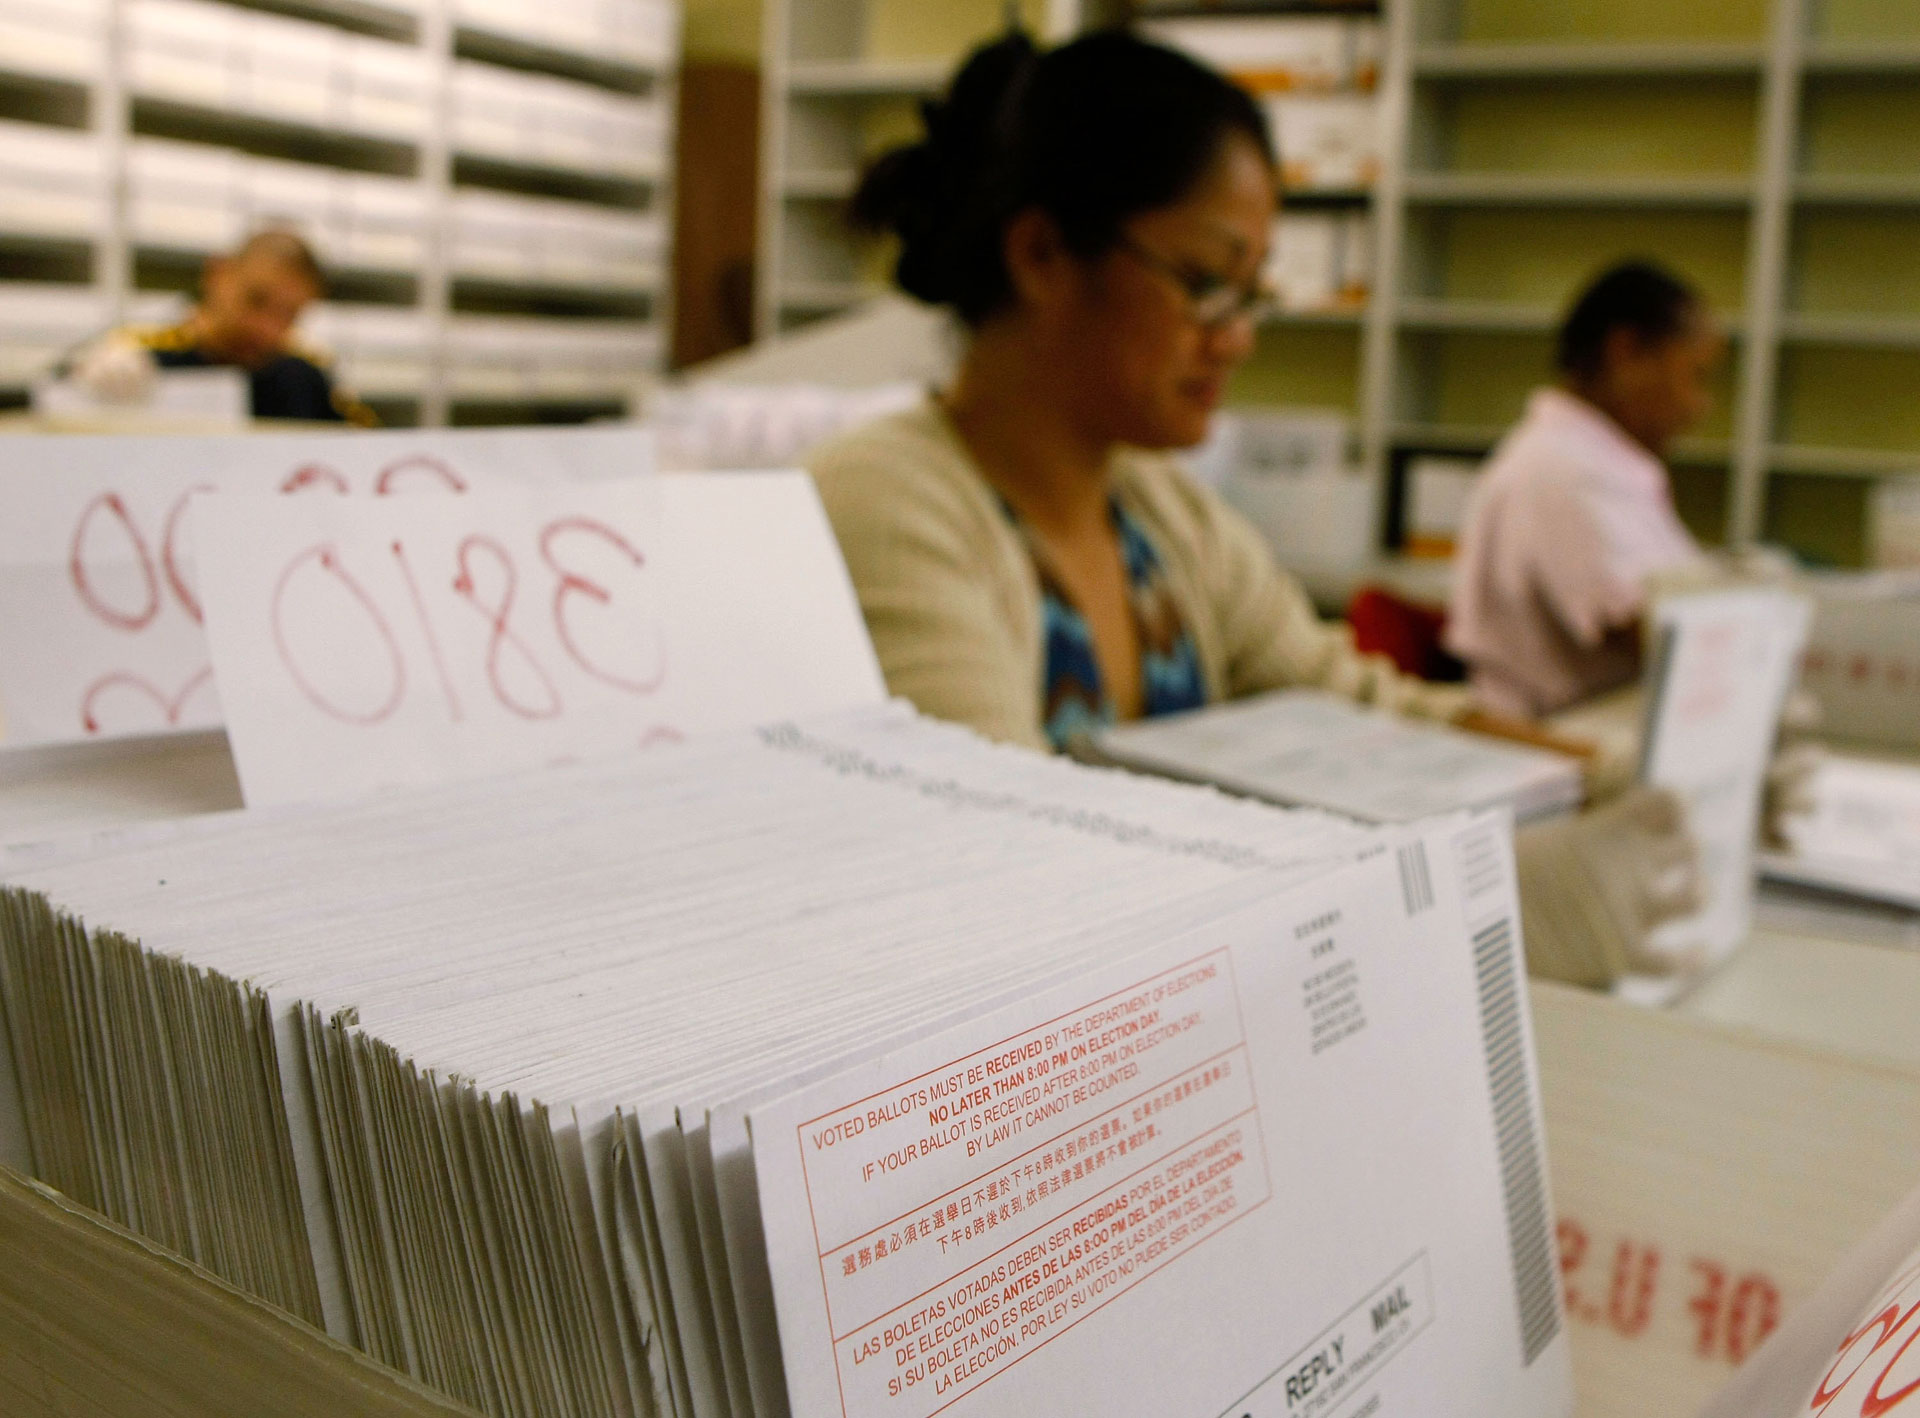 San Francisco election workers sort stacks of vote-by-mail ballots.